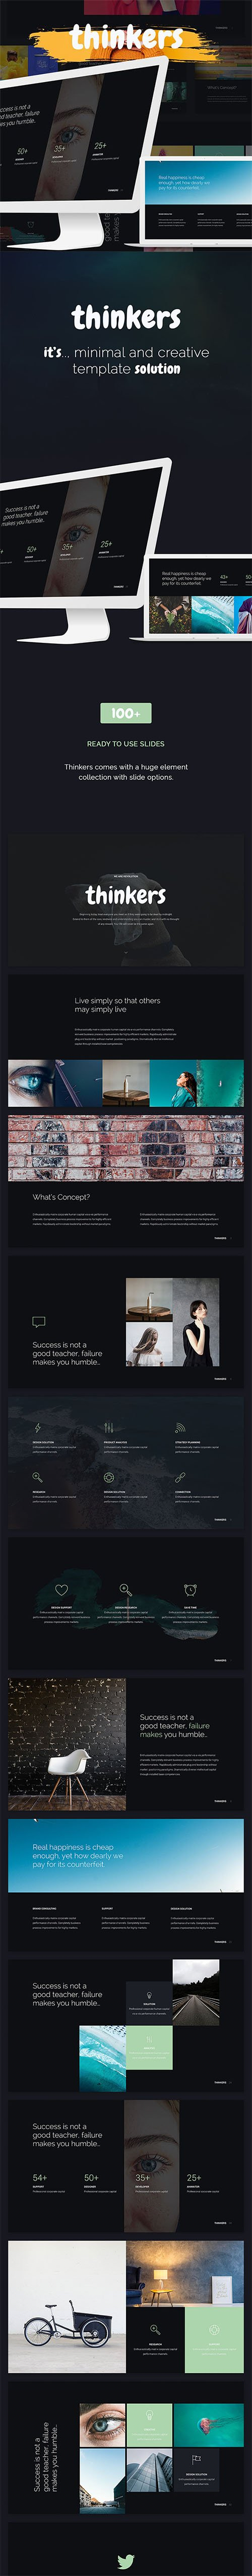 Thinkers - Creative Presentation Powerpoint and Keynote Templates